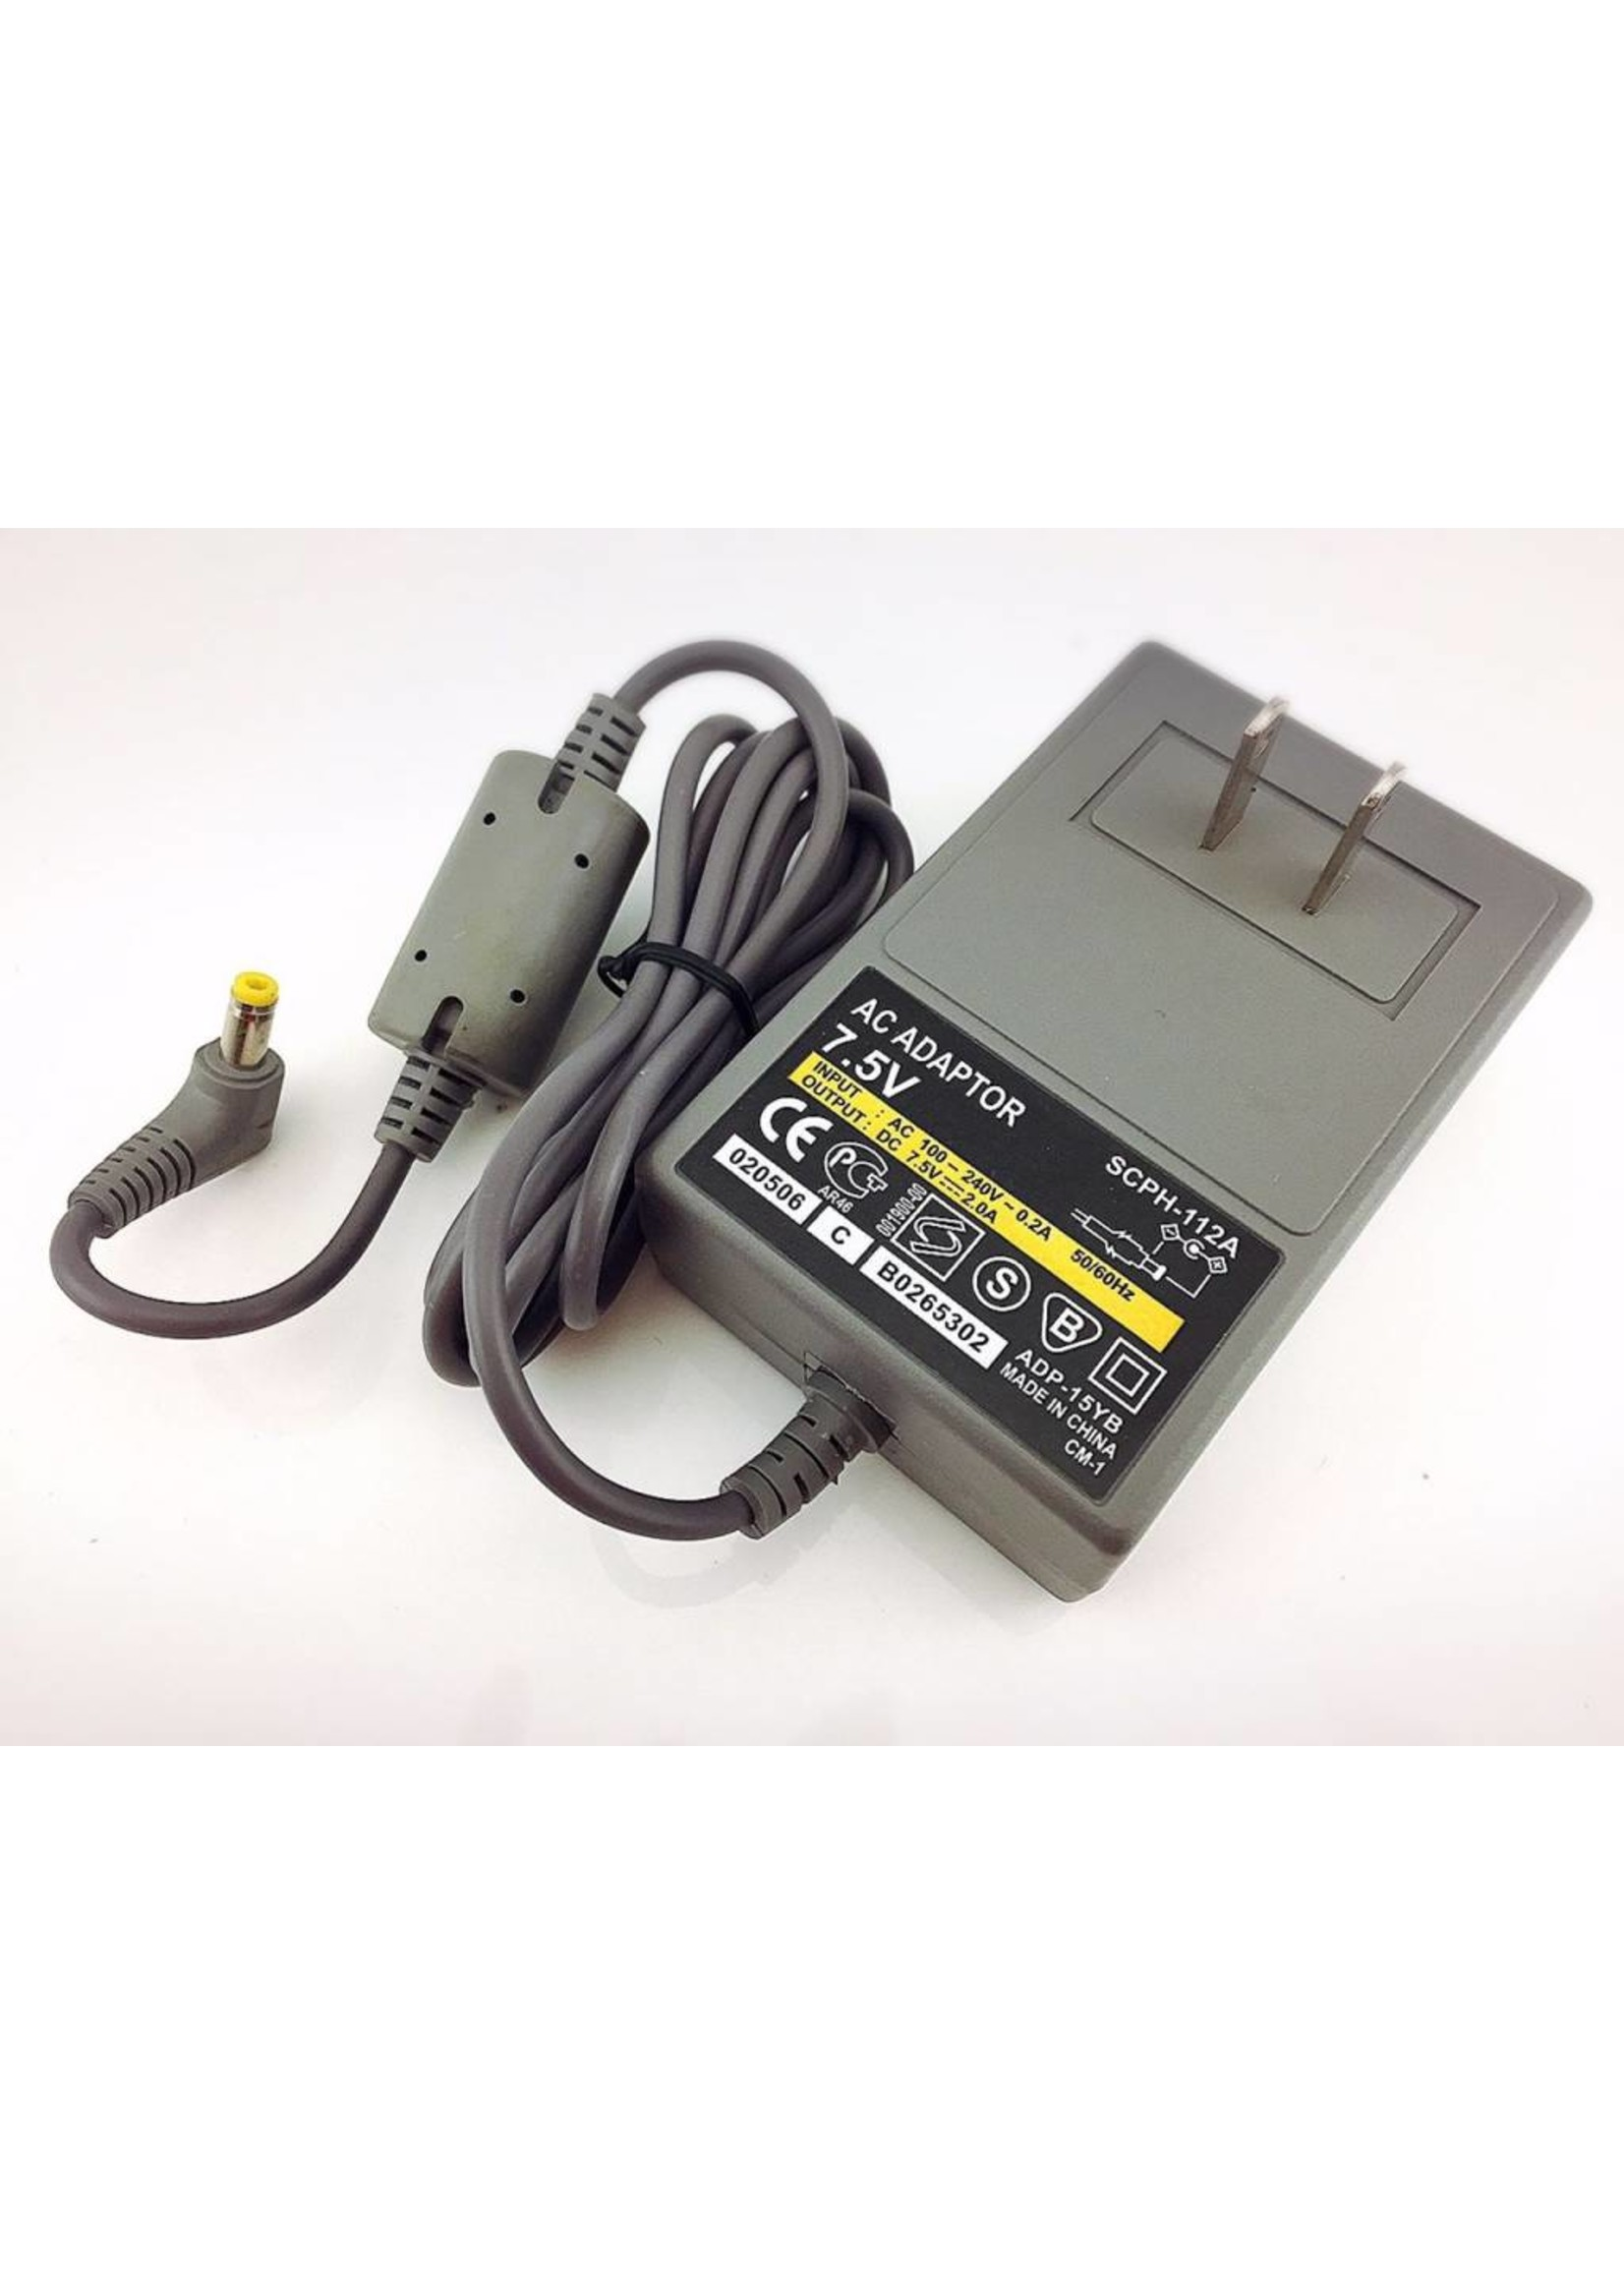 PS1 AC adapter